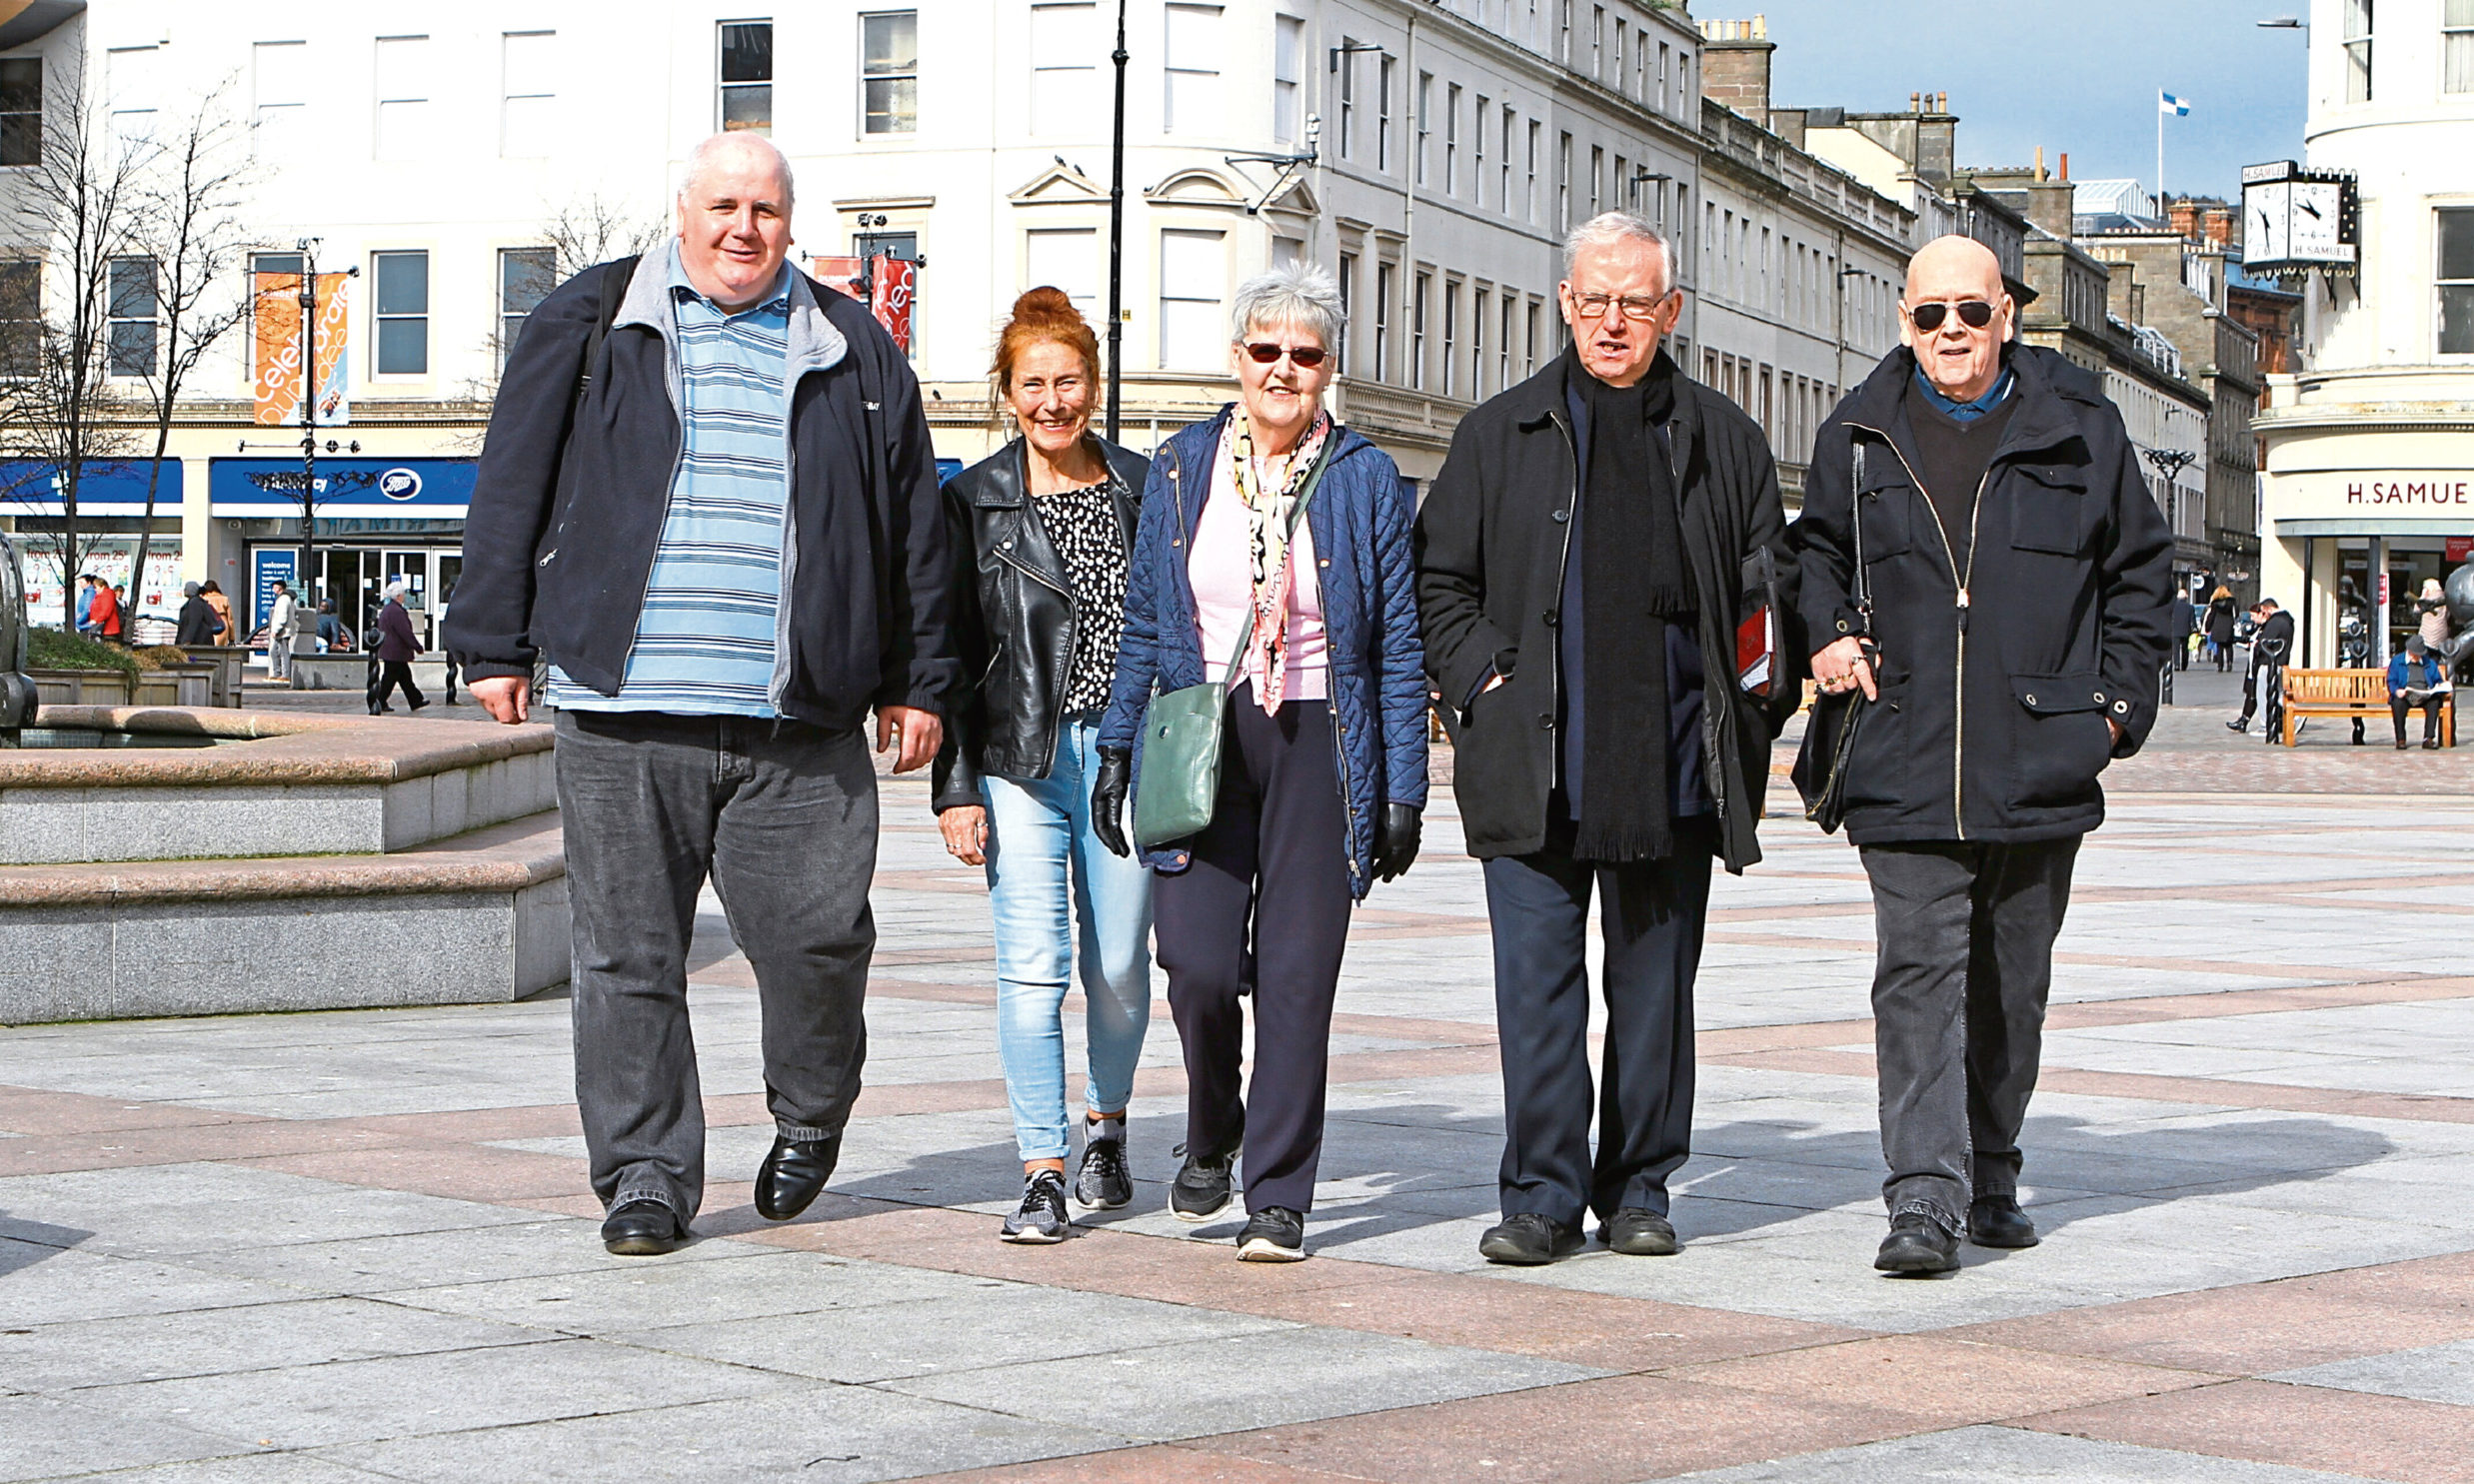 Dundee Pensioners Forum members Murray Webster, Barbara Myloff, Dorothy McHugh, Gordon Samson and Jim Elder on their way to the meeting to get the shower tax abolished.